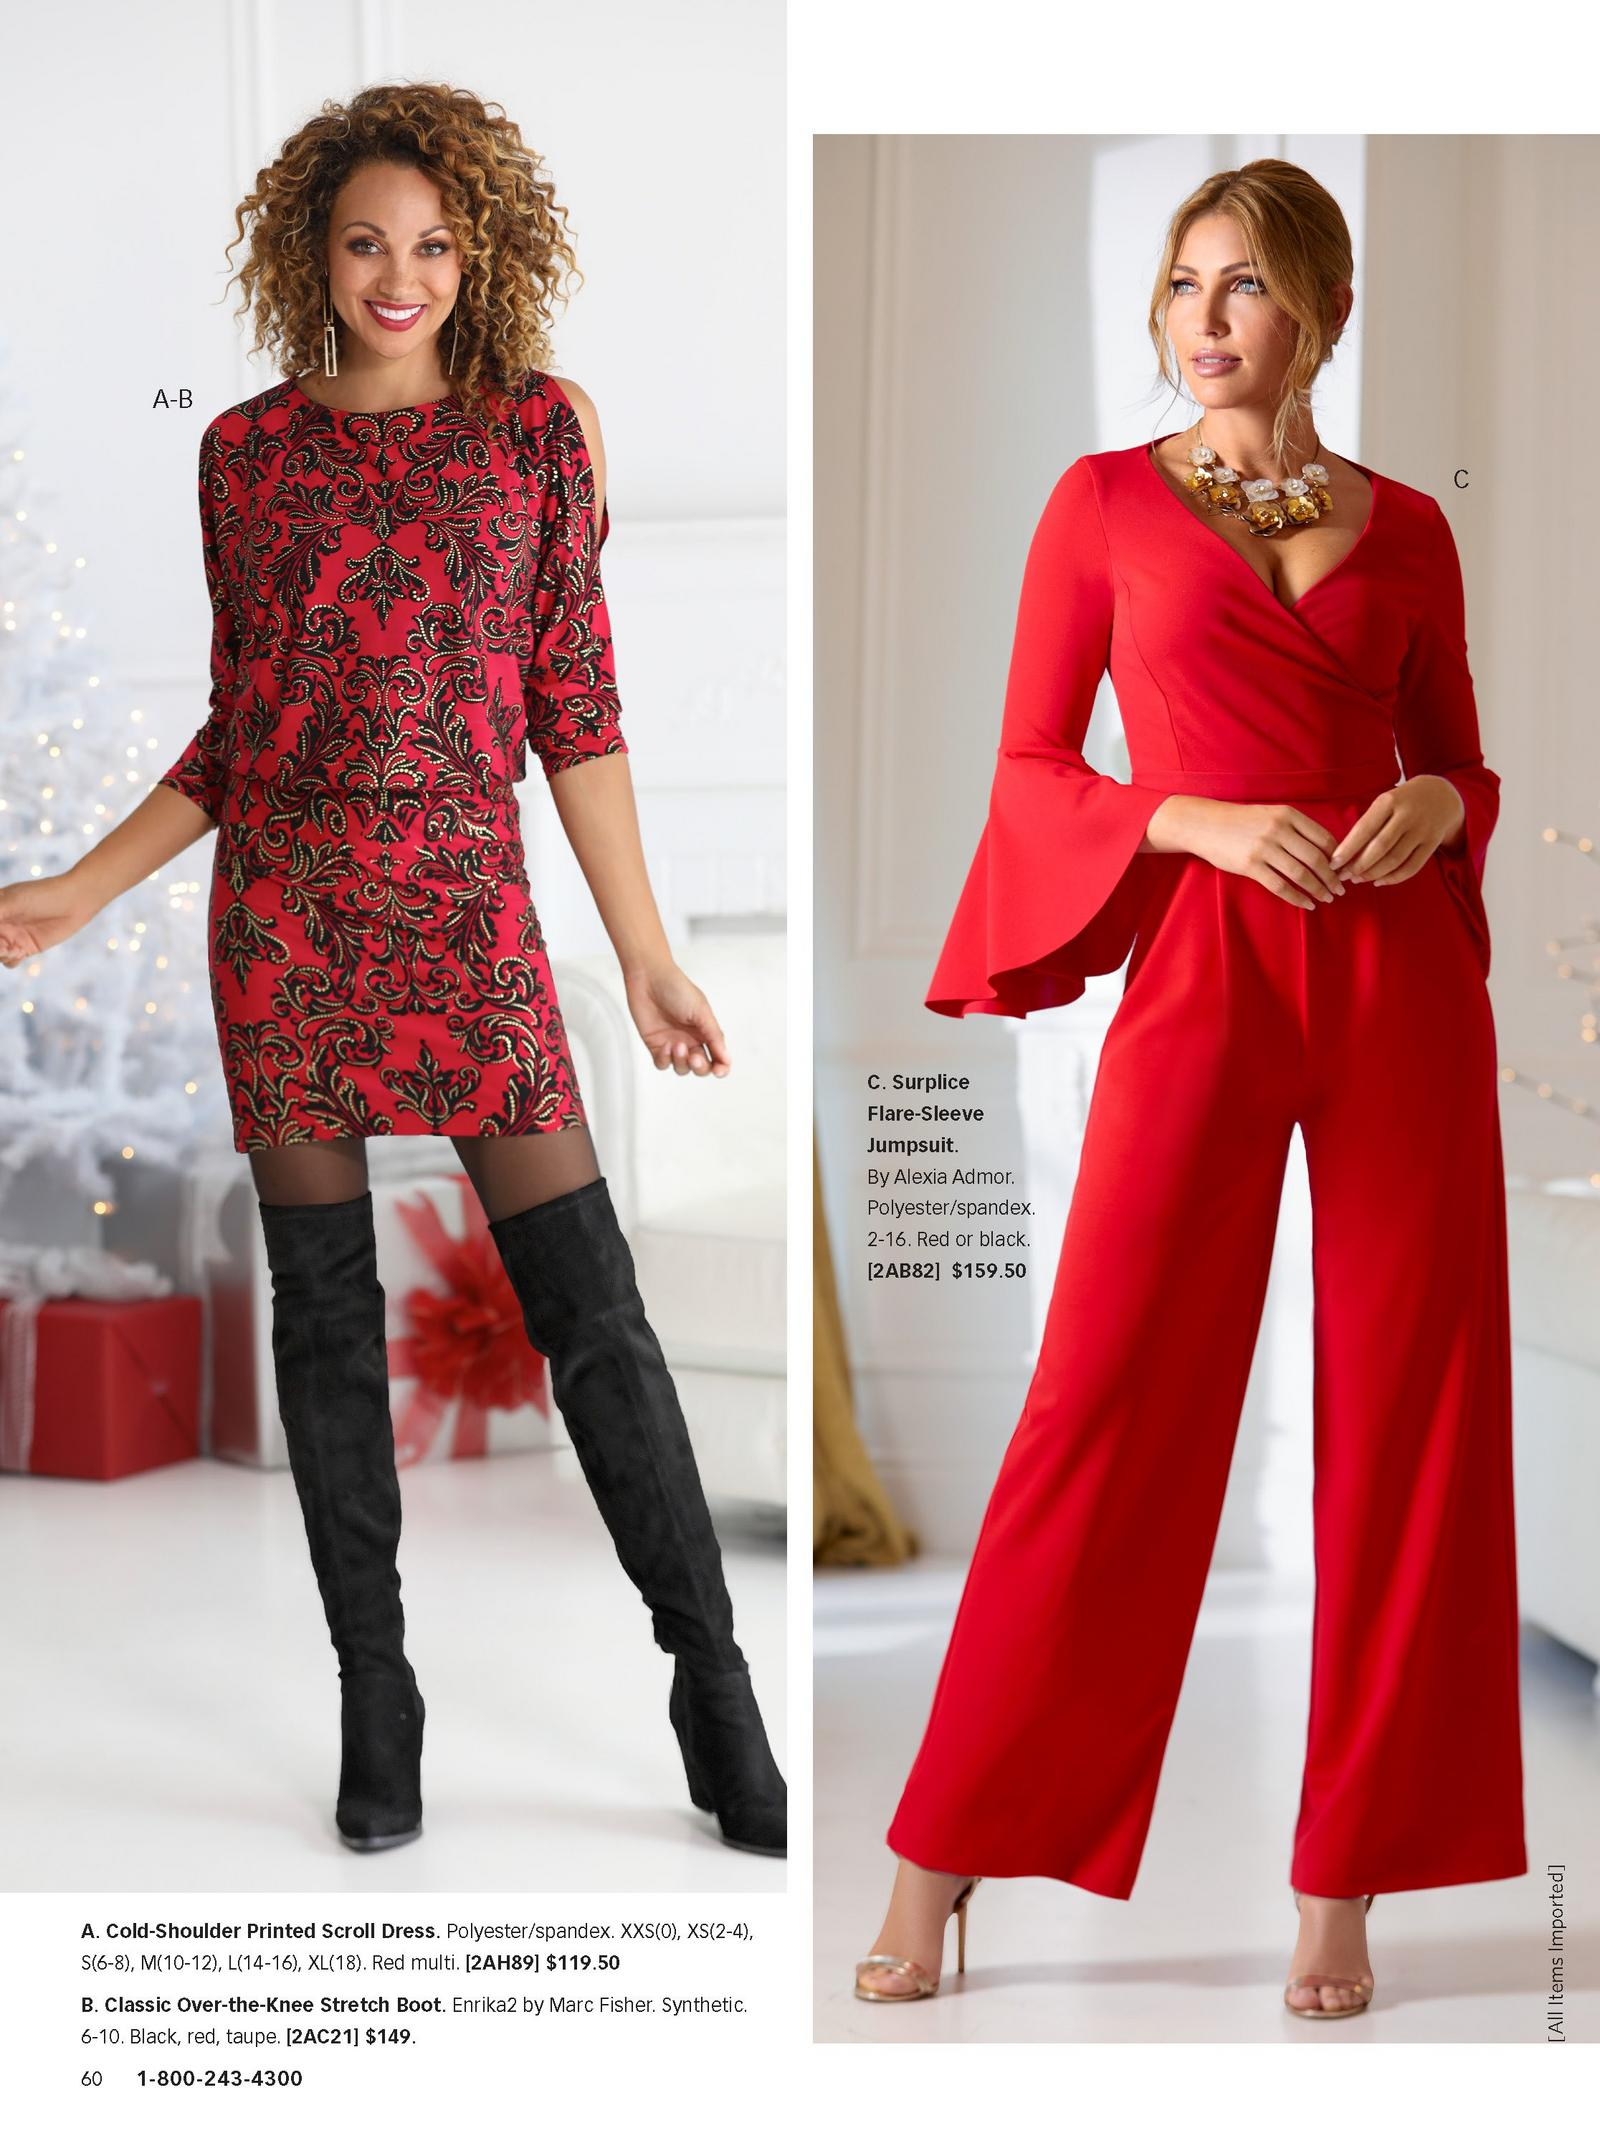 left model: red cold-shoulder printed scroll dress and over-the-knee black boots. right model: red surplice flare-sleeve jumpsuit.